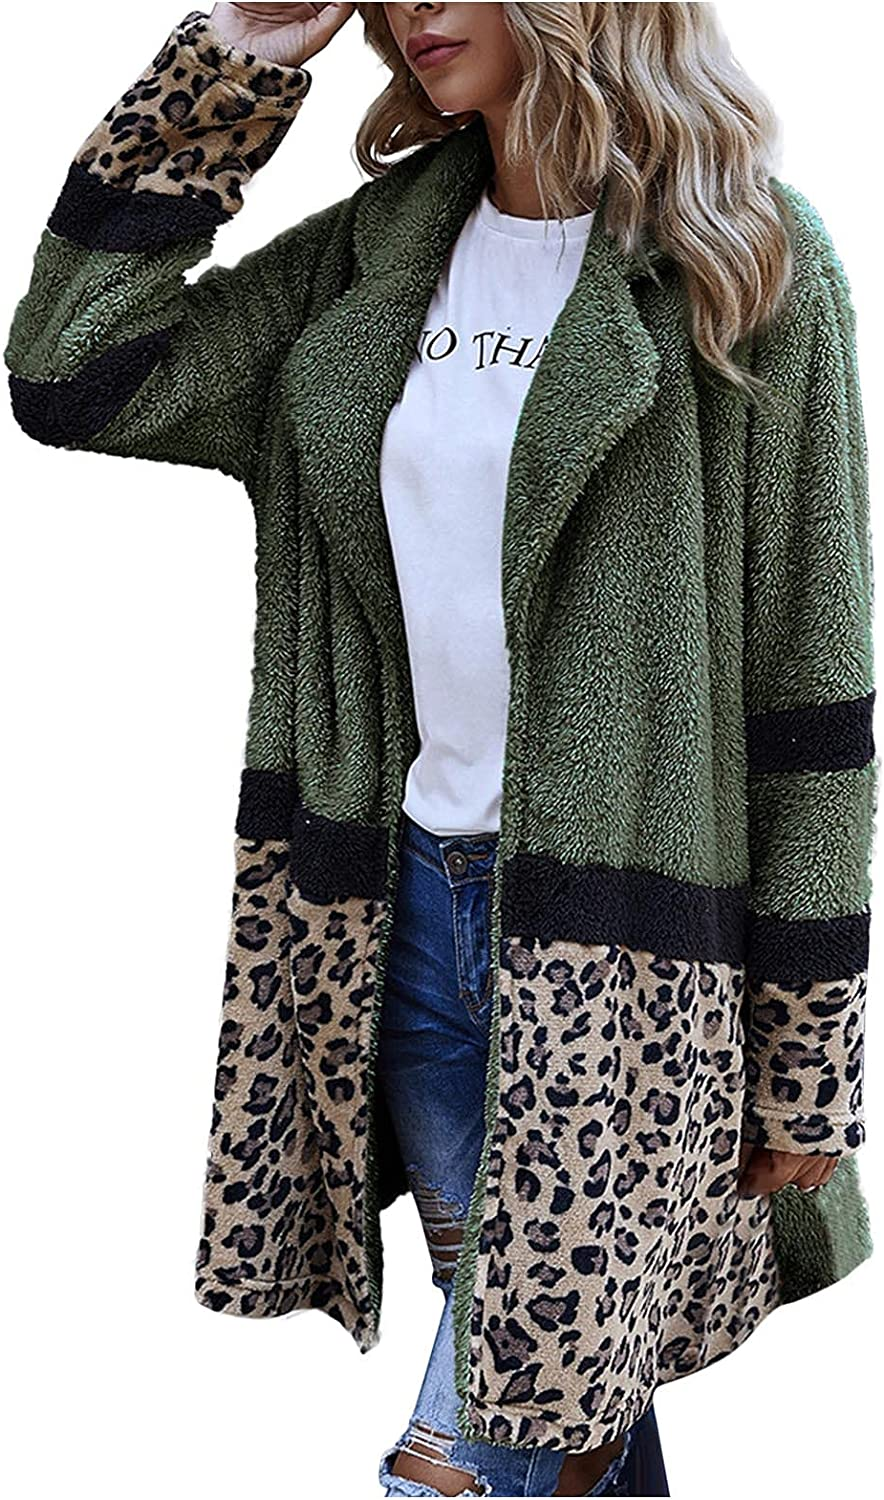 Womens Faux Fur Oversized Cardigan Fashion Leopard Color Block Coat Casual Long Sleeve Open Front Tops Warm Outerwear